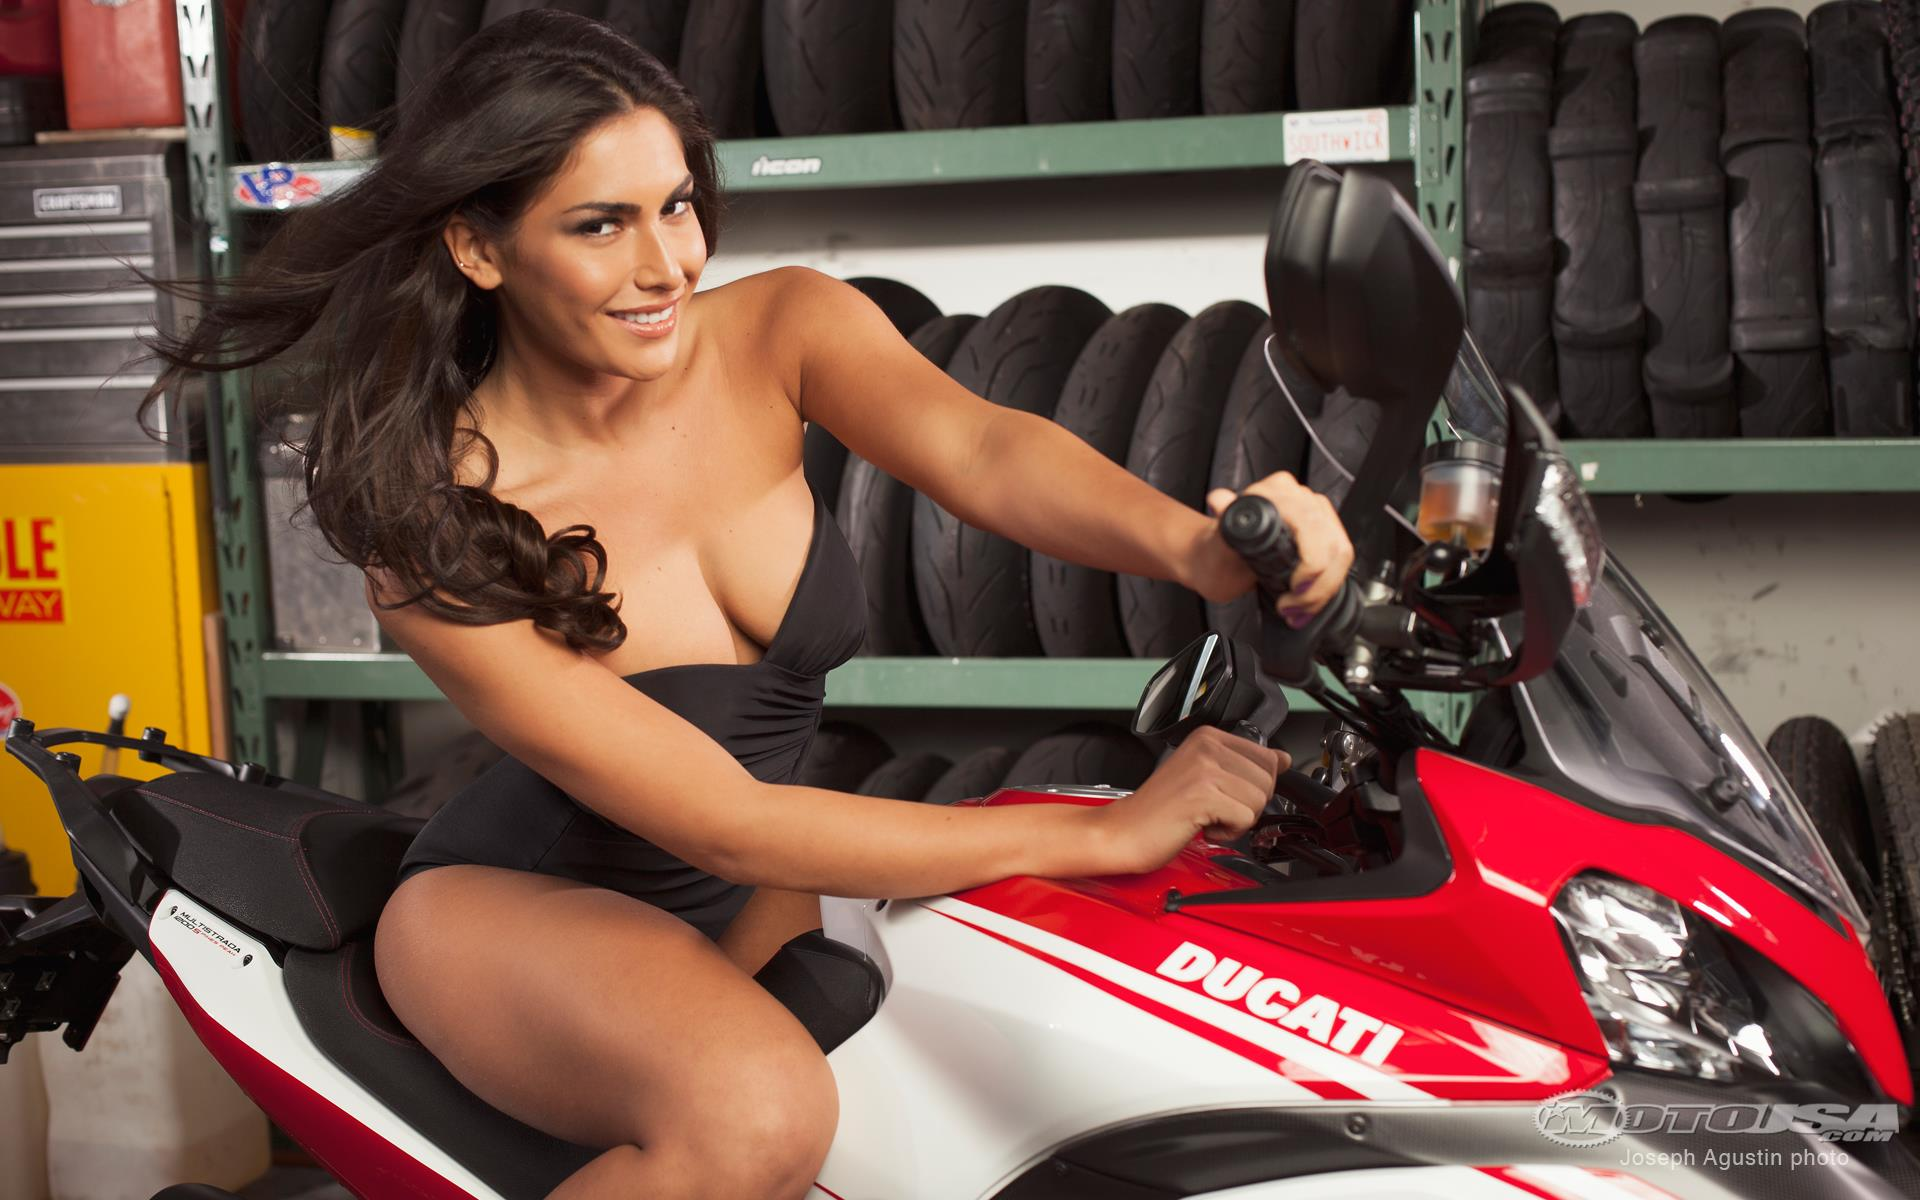 Ducati Multistrada 1200 S Pikes Peak Edition images #80029